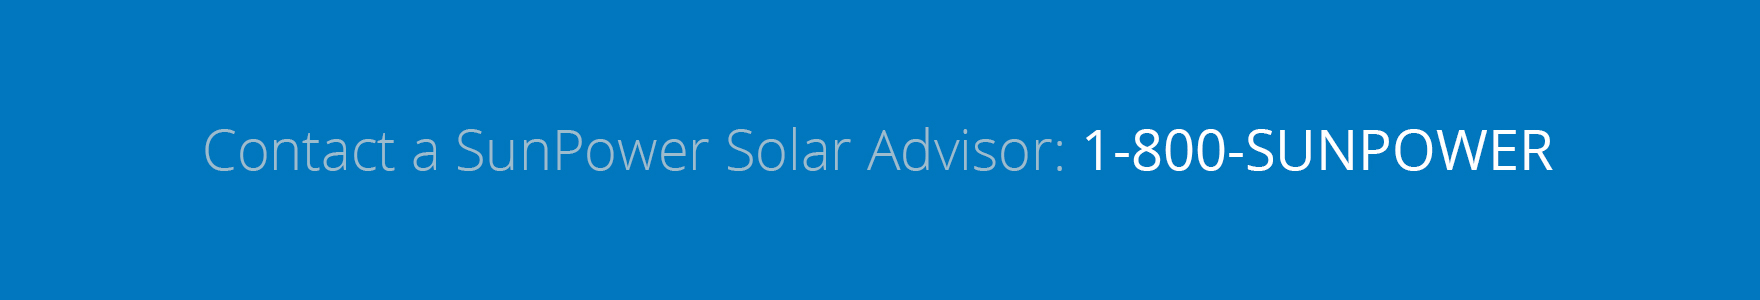 Contact a SunPower Solar Advisor: 1-800-SUNPOWER